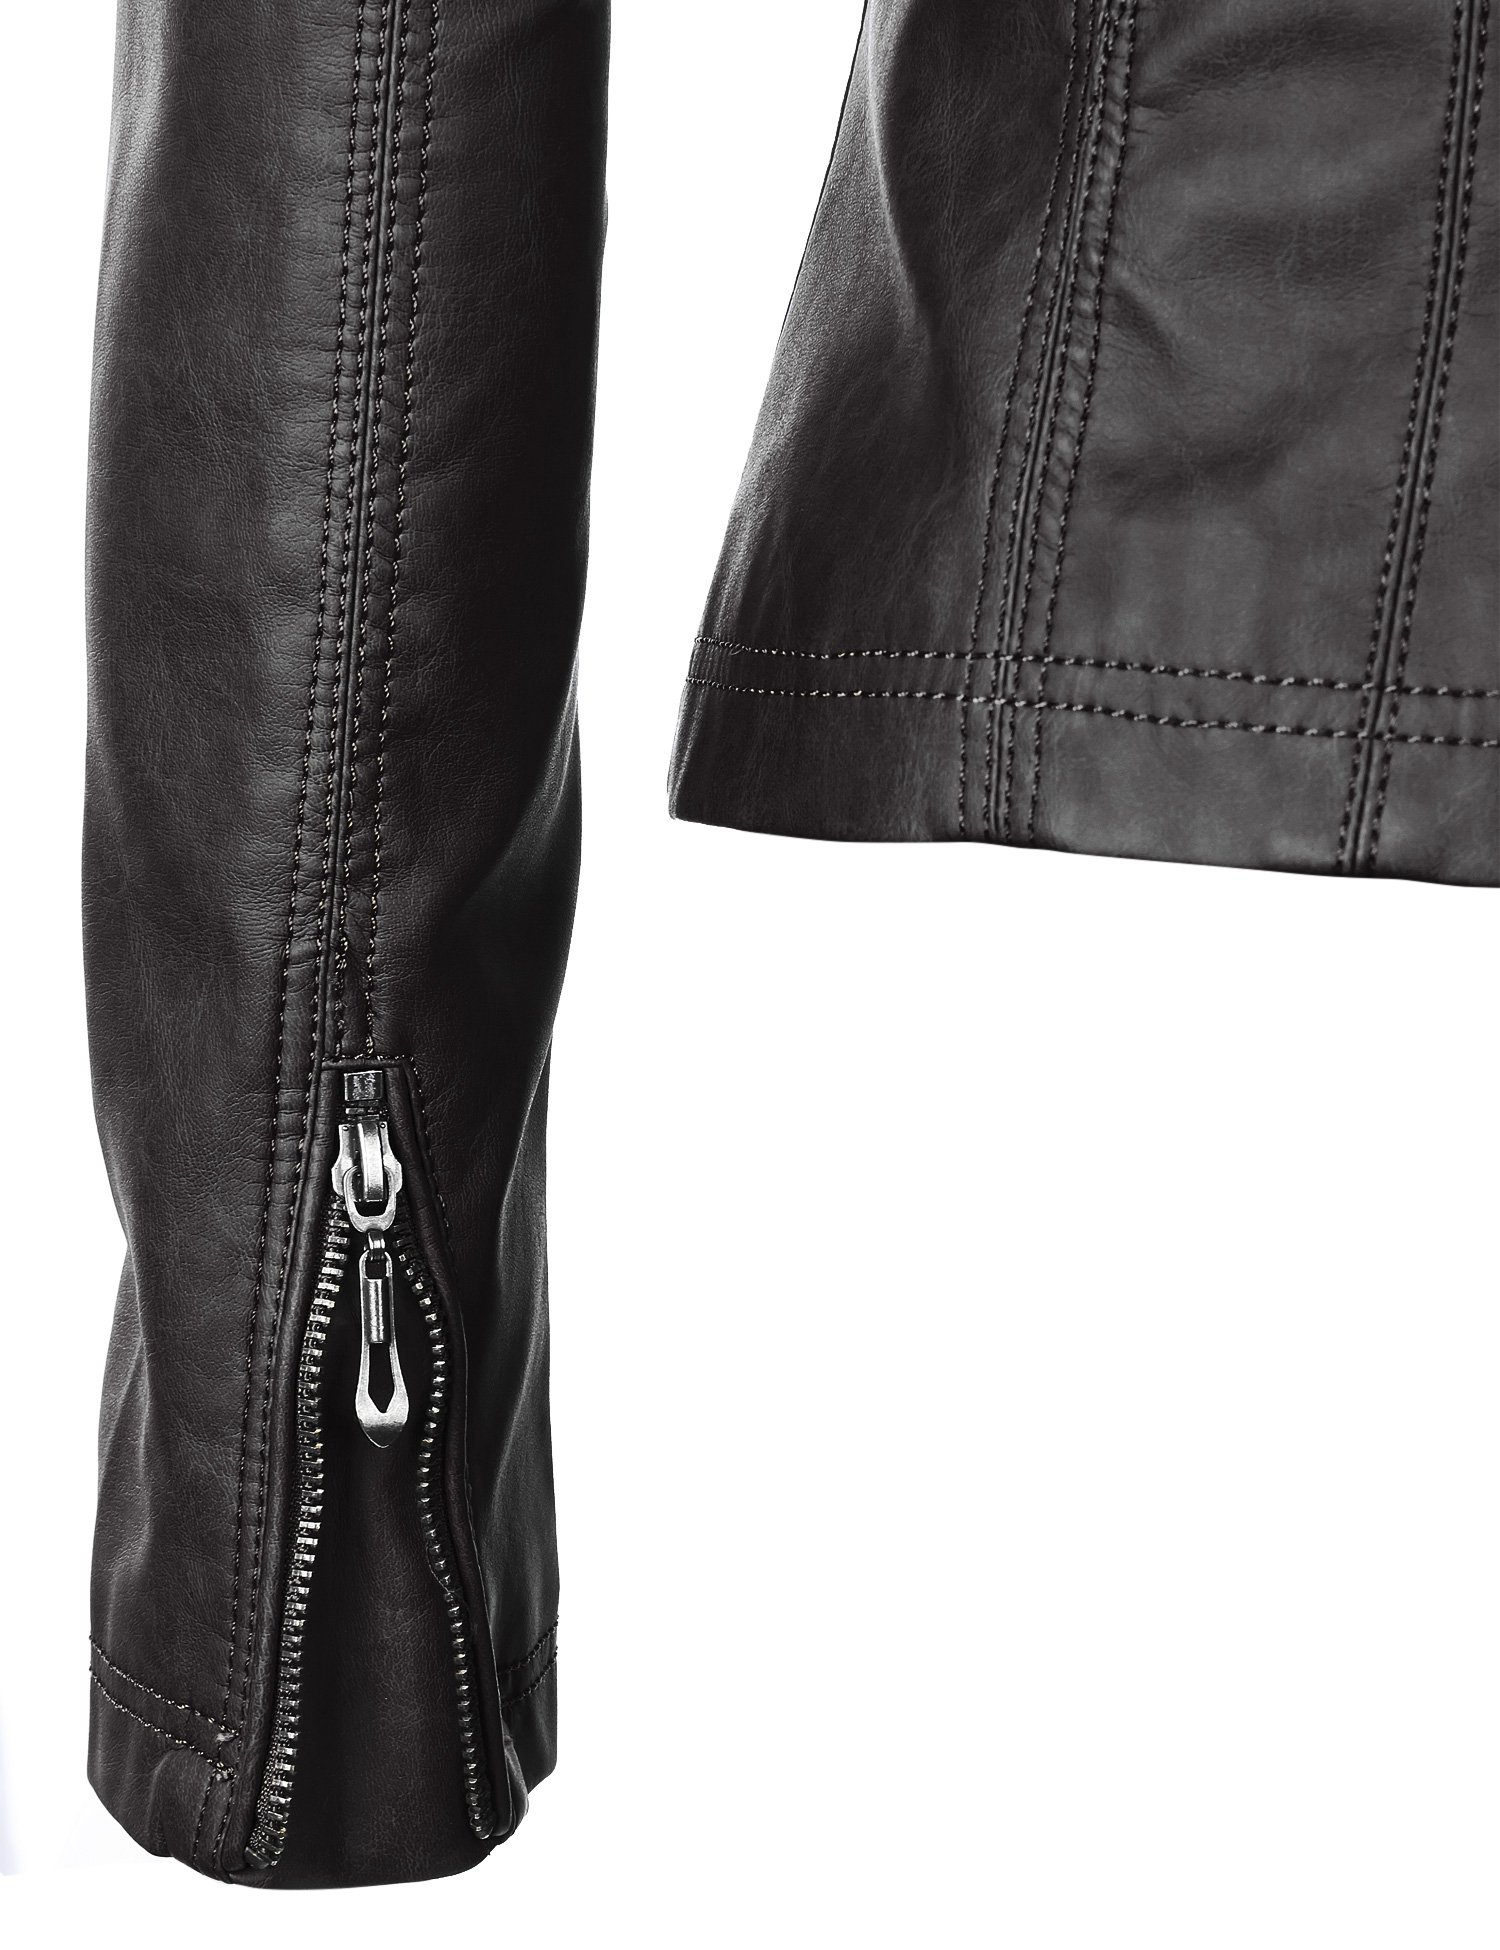 WJC877 Womens Panelled Faux Leather Moto Jacket L BLACK by Lock and Love (Image #5)